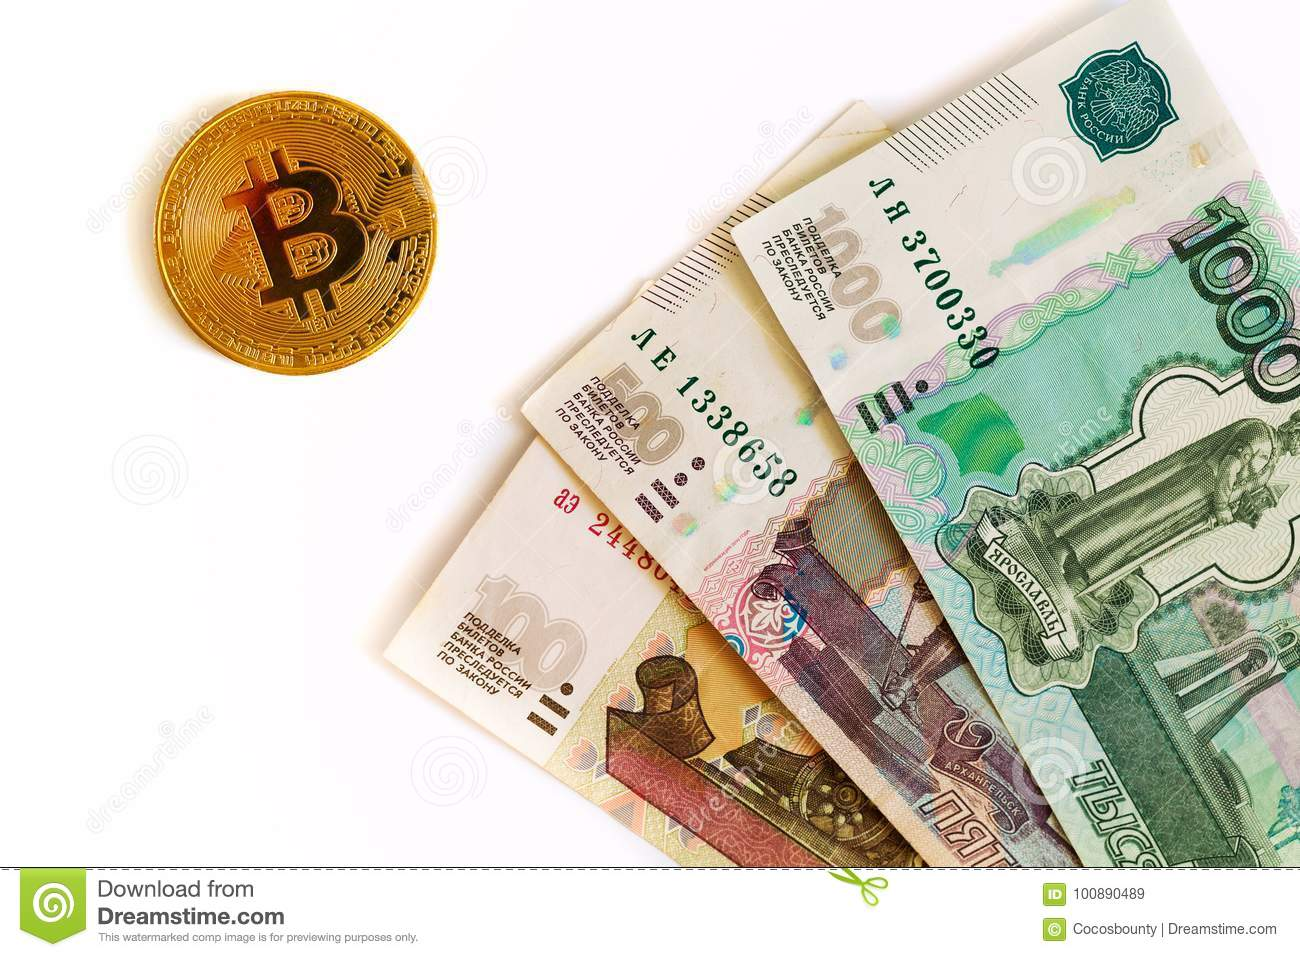 How to exchange Bitcoin for rubles 26